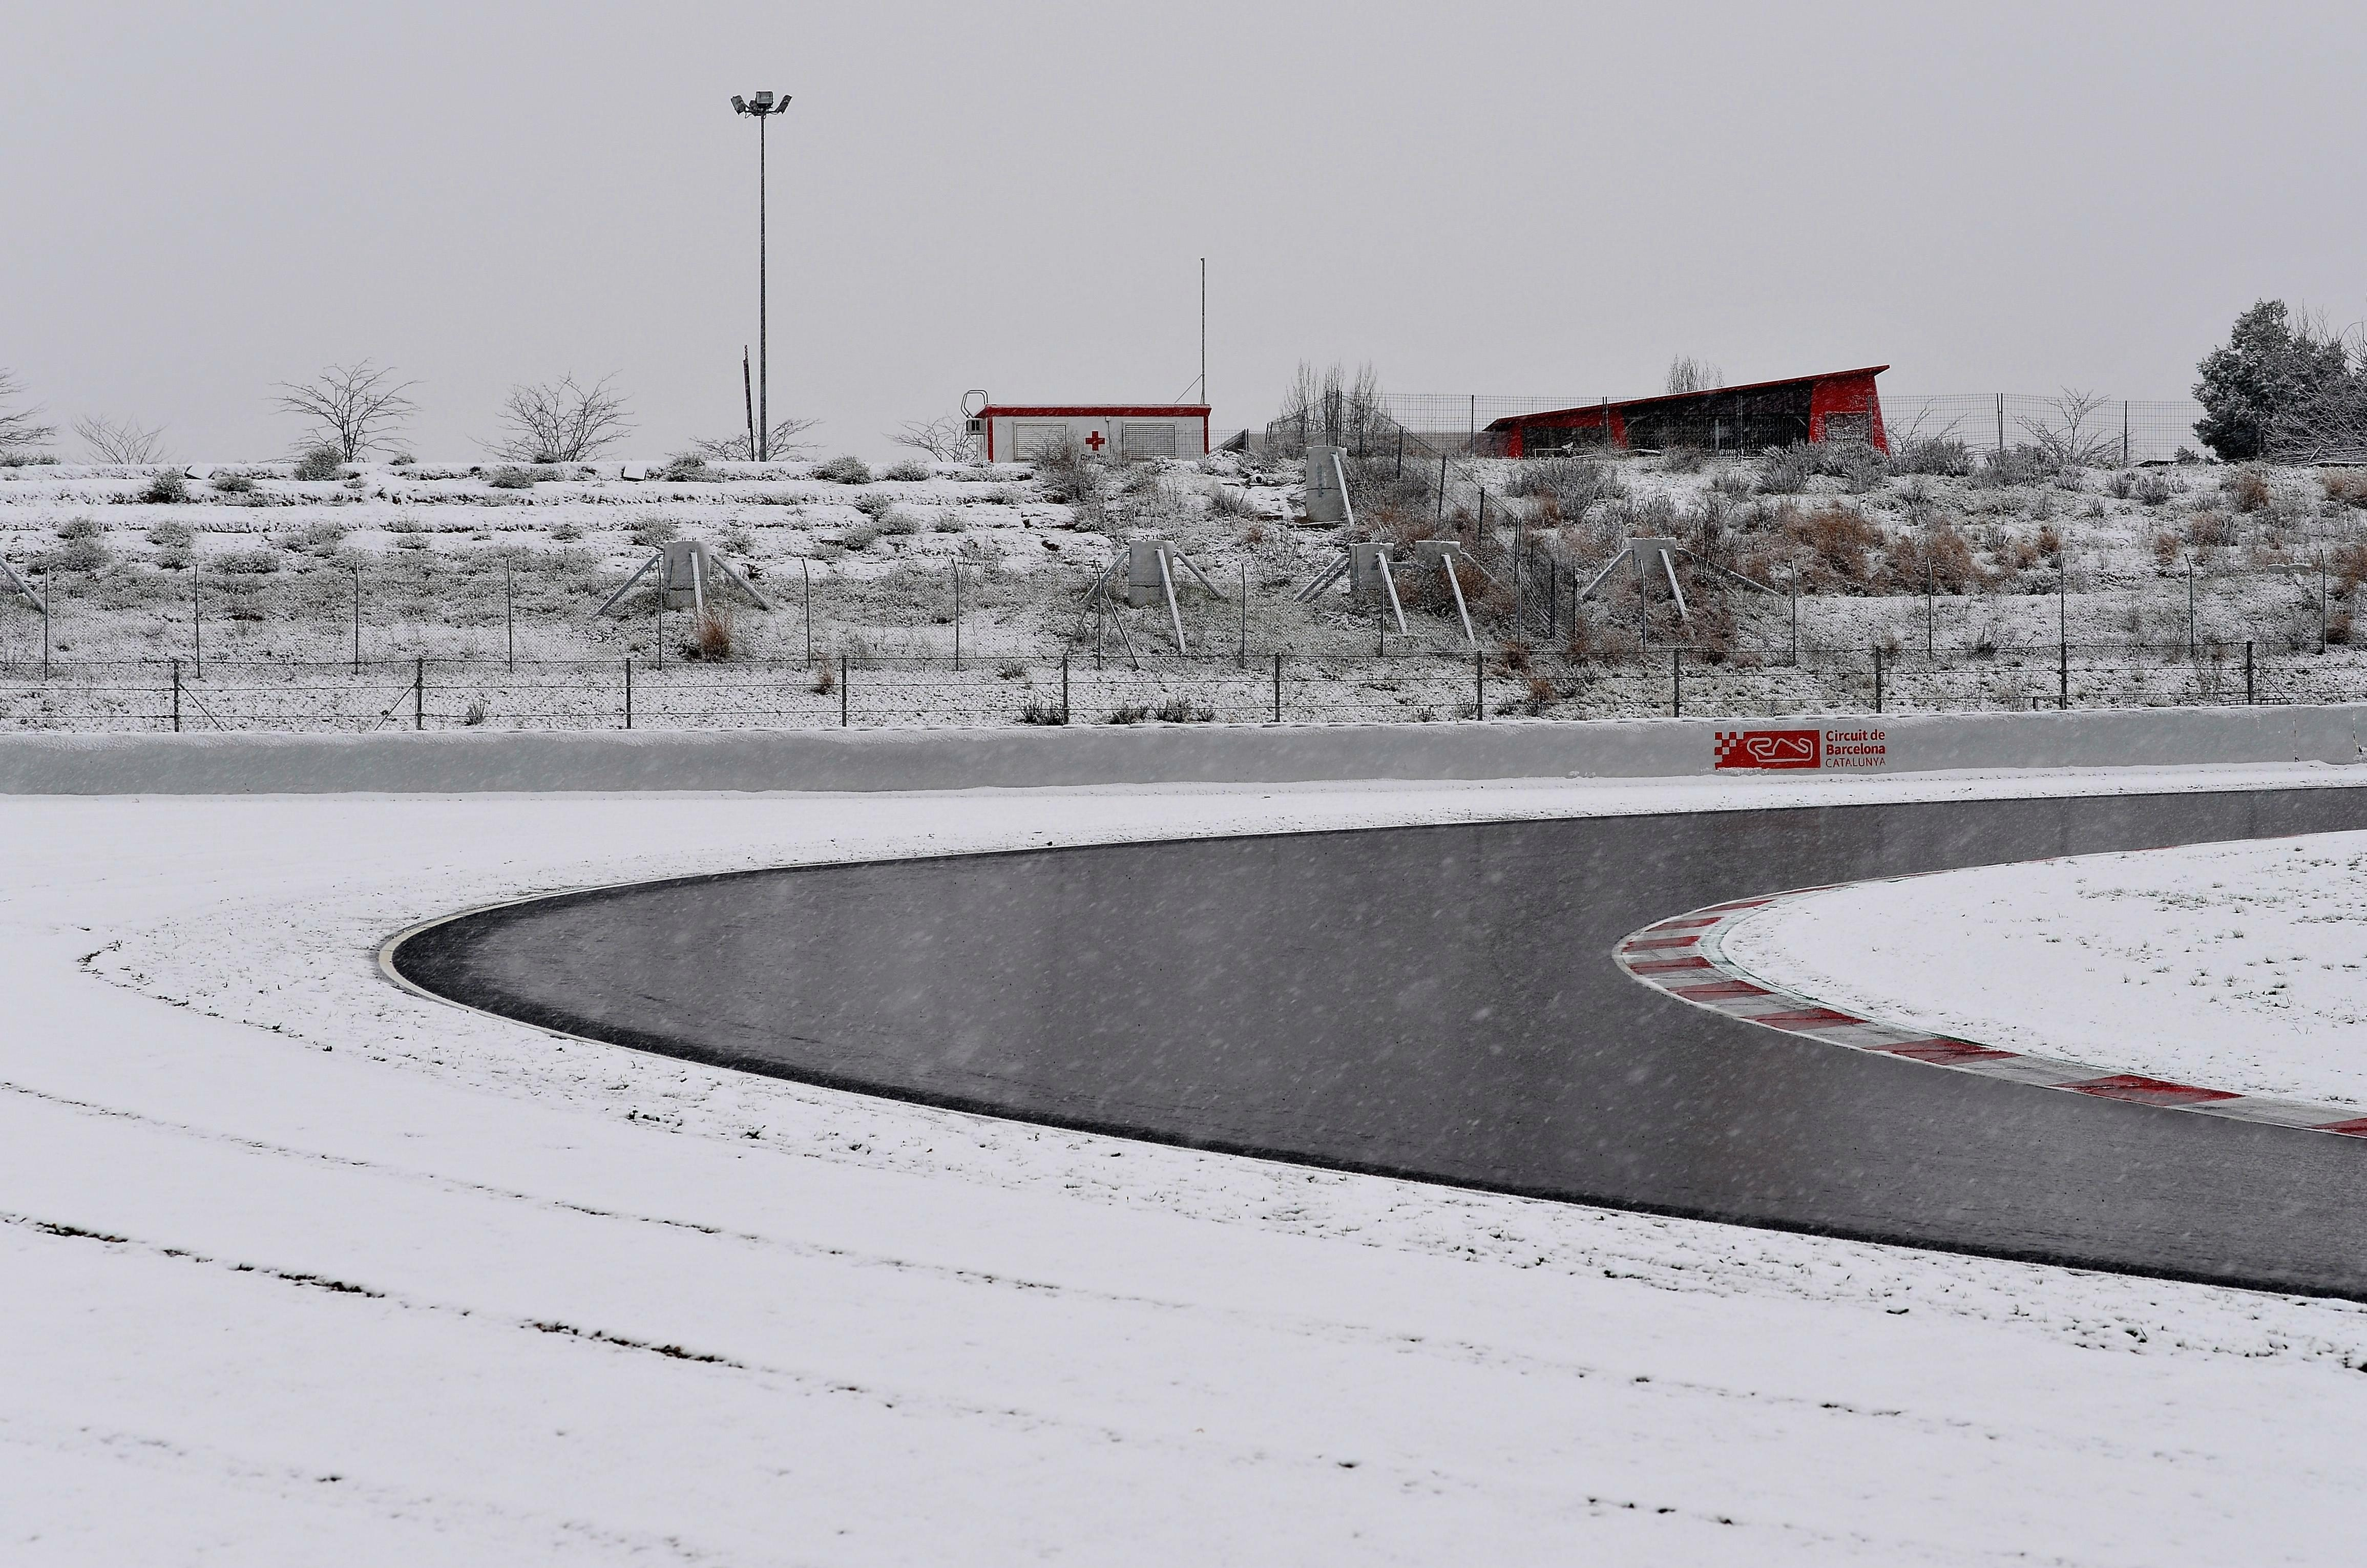 Freezing temperatures mean Hamilton's second and third test run on Tuesday was also scrapped